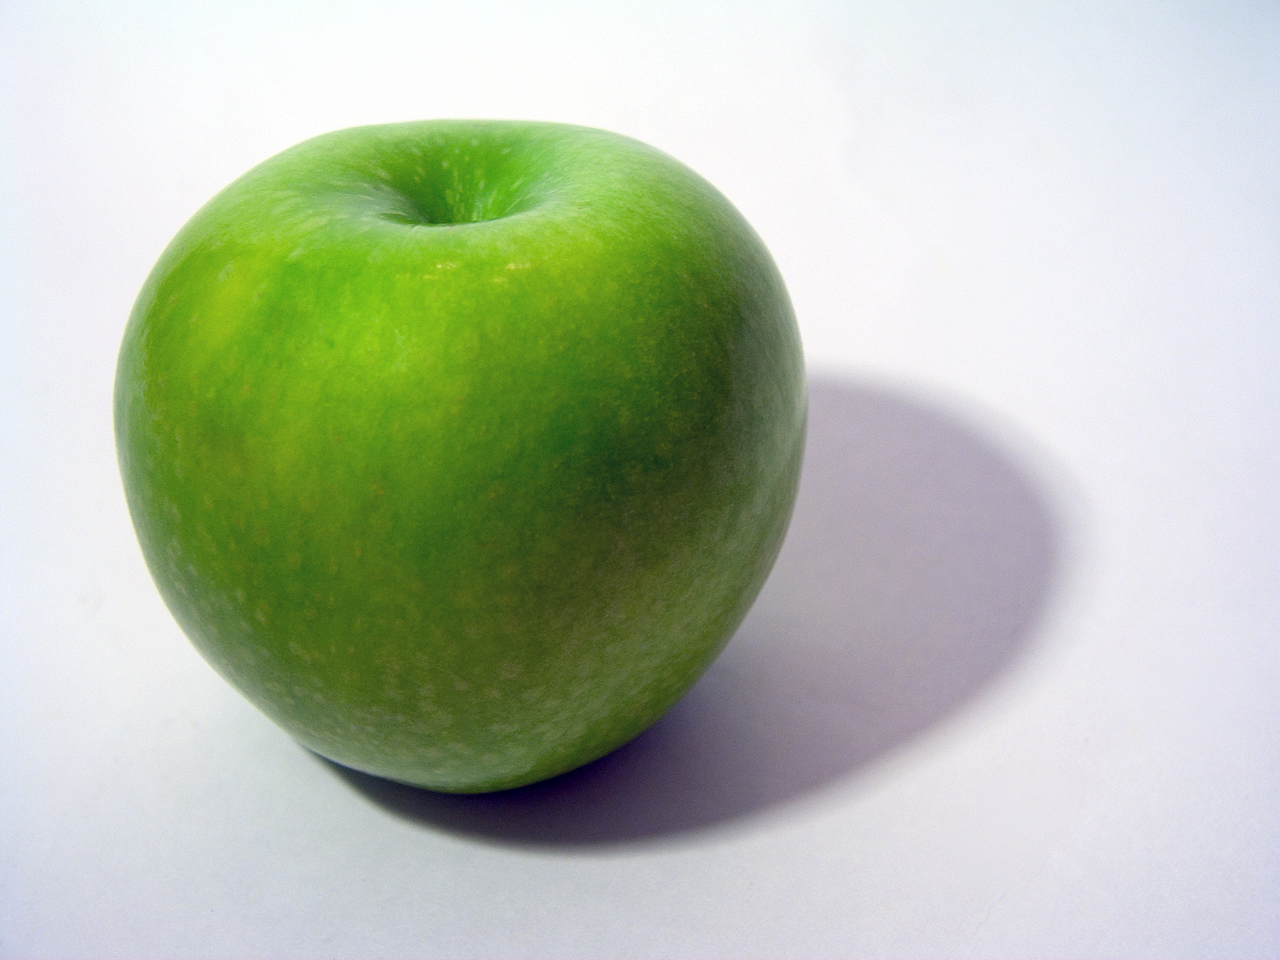 Types of Green Apple's http://commons.wikimedia.org/wiki/File:GreenApple.png?uselang=fr